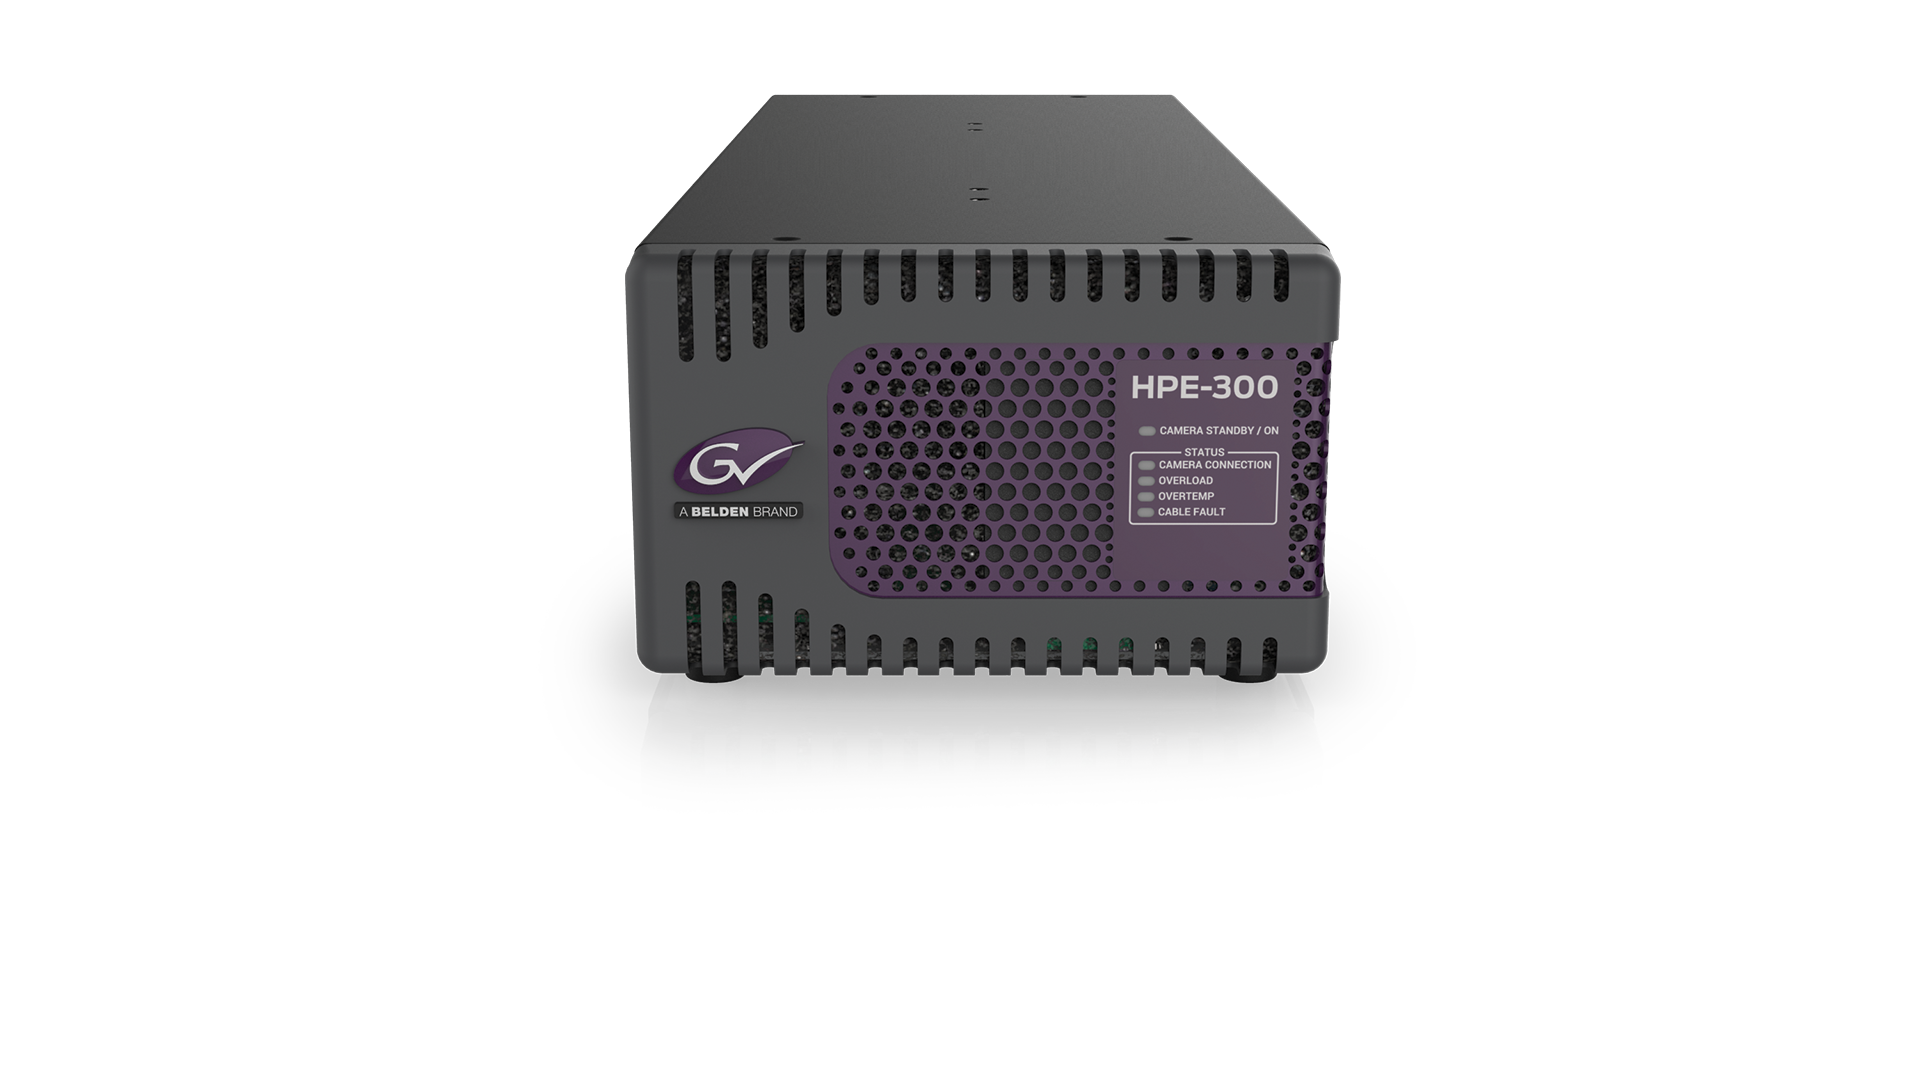 HPE-300 Top Front View